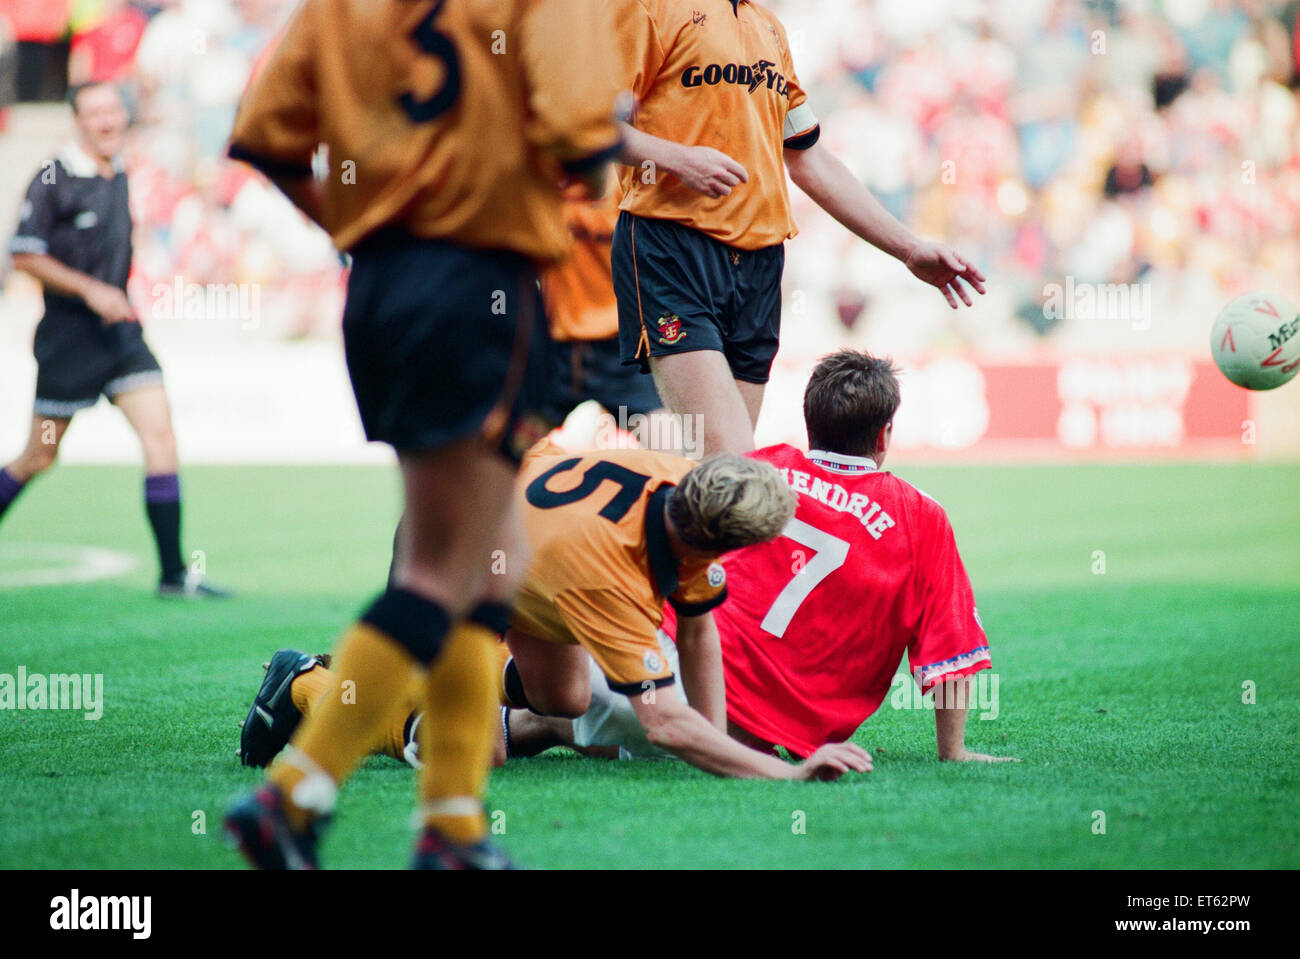 Wolves 2-3 Middlesbrough, League match at Ayresome Park, Saturday 28th August 1993. - Stock Image